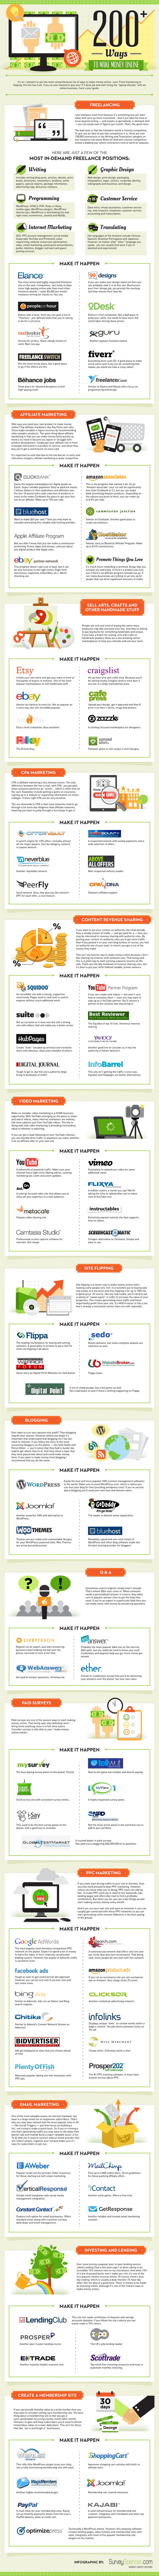 Ways Make Money Online Infographic